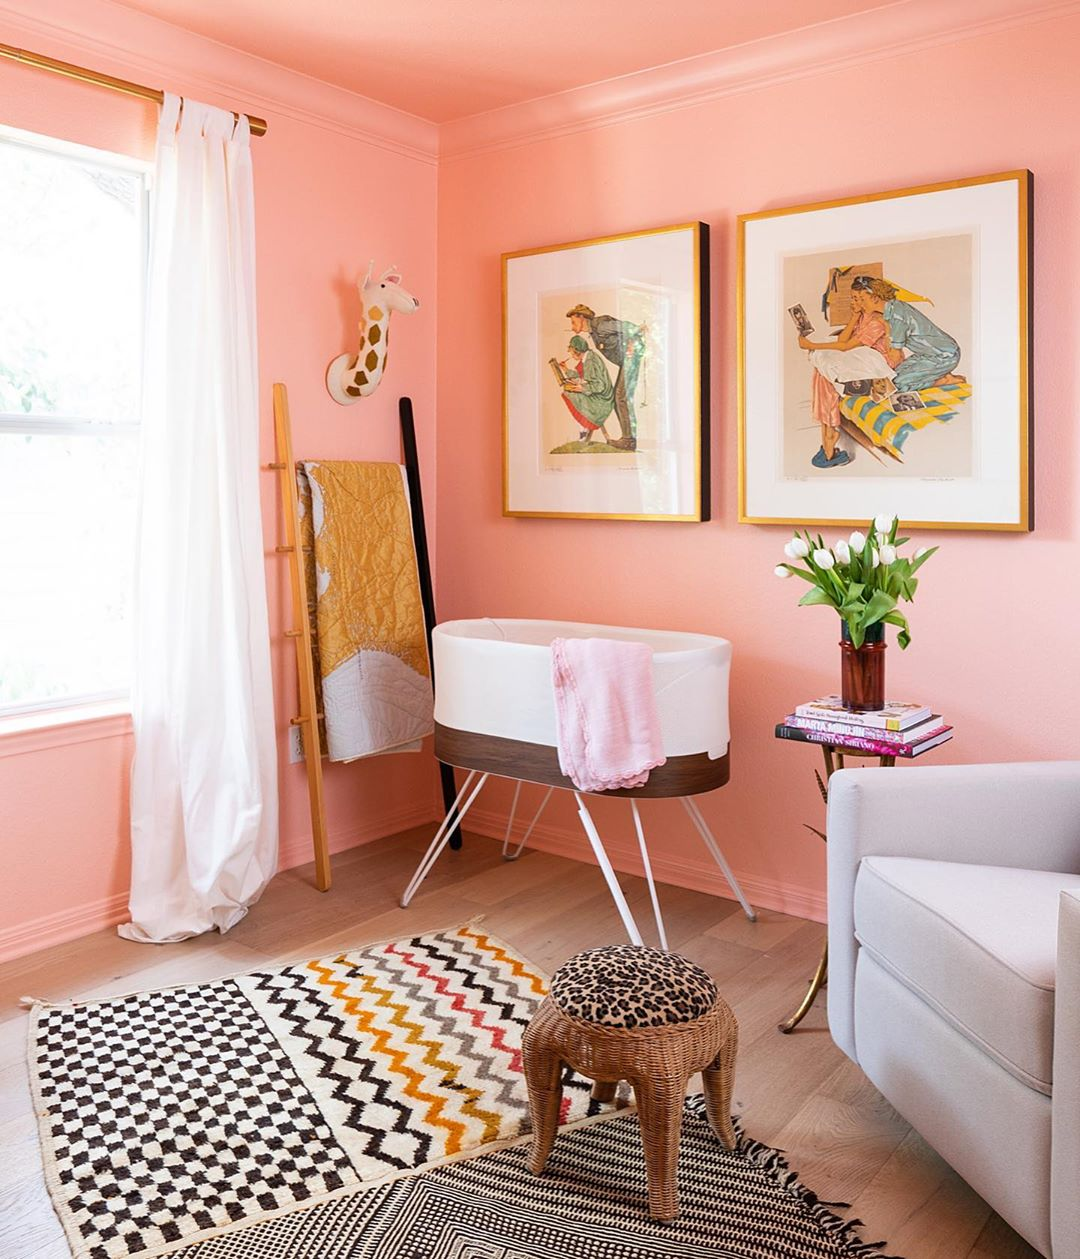 We're Swooning Over This Sunset-Hued, Retro-Inspired Nursery